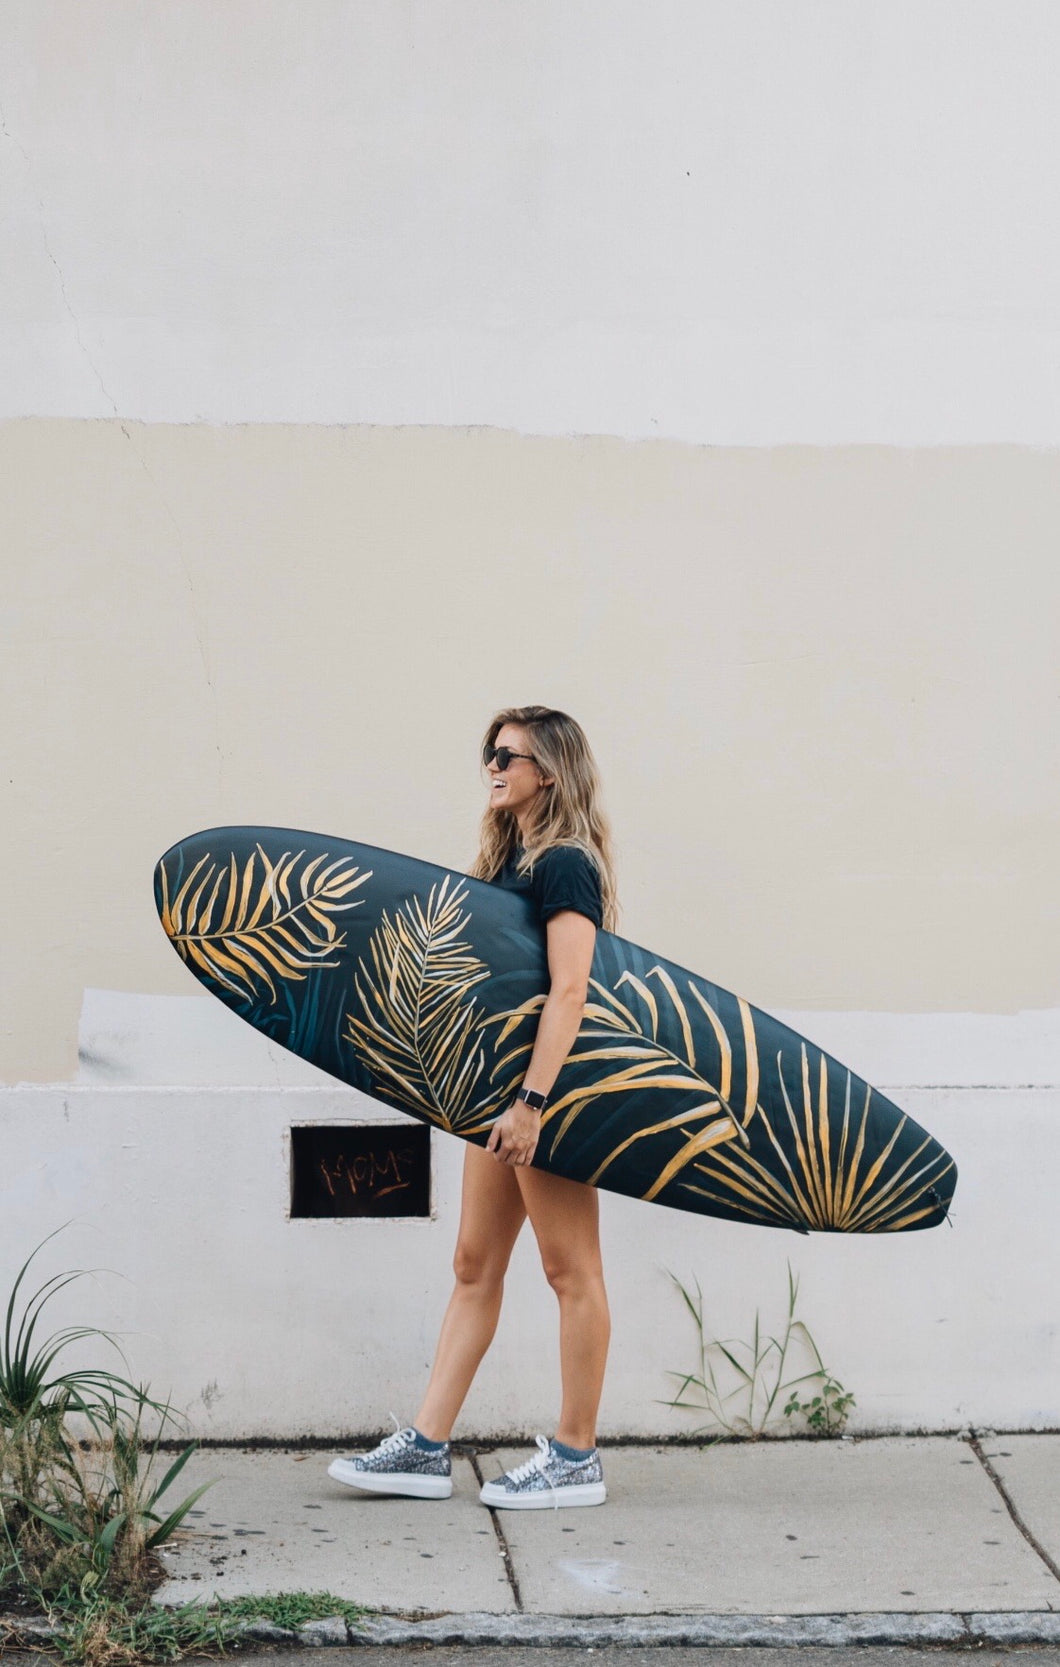 GILDED - painted surf board